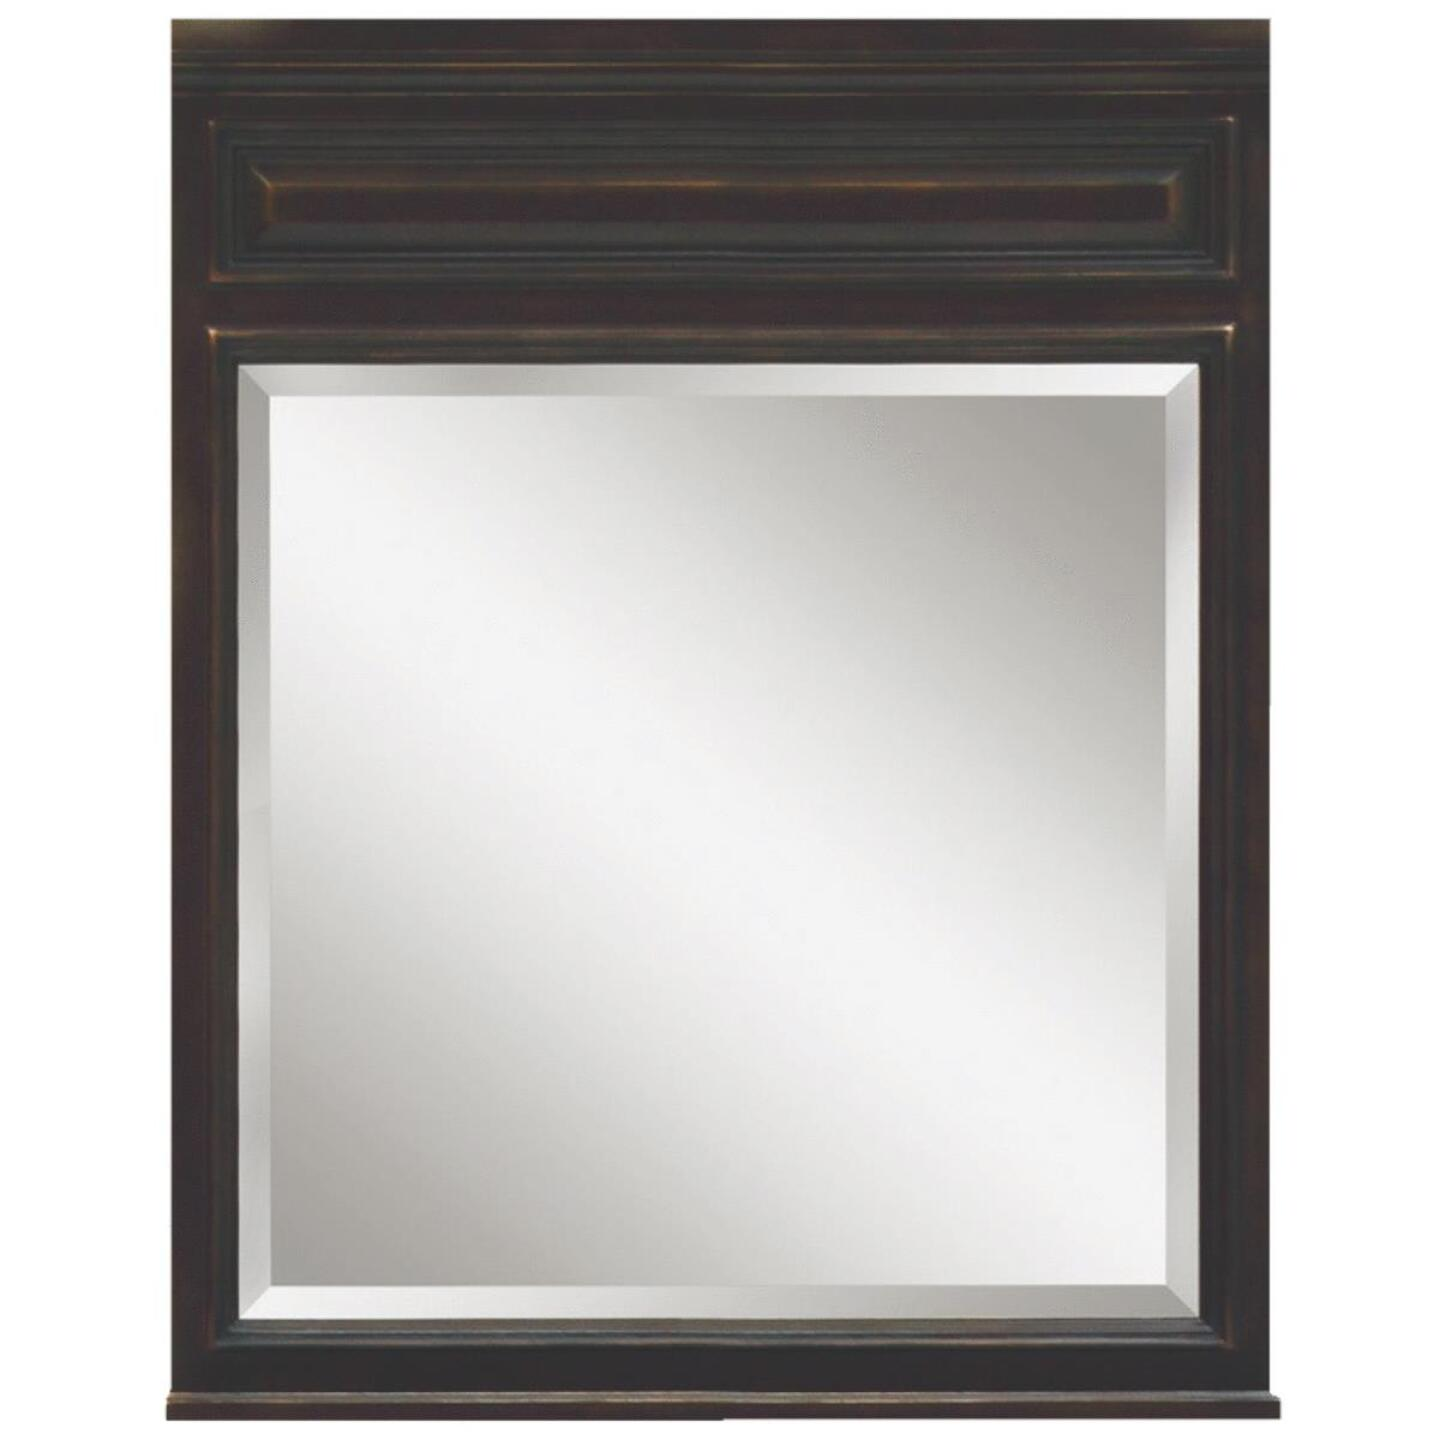 Sunny Wood Barton Hill Black Onyx 30 In. W x 38 In. H Vanity Mirror Image 1